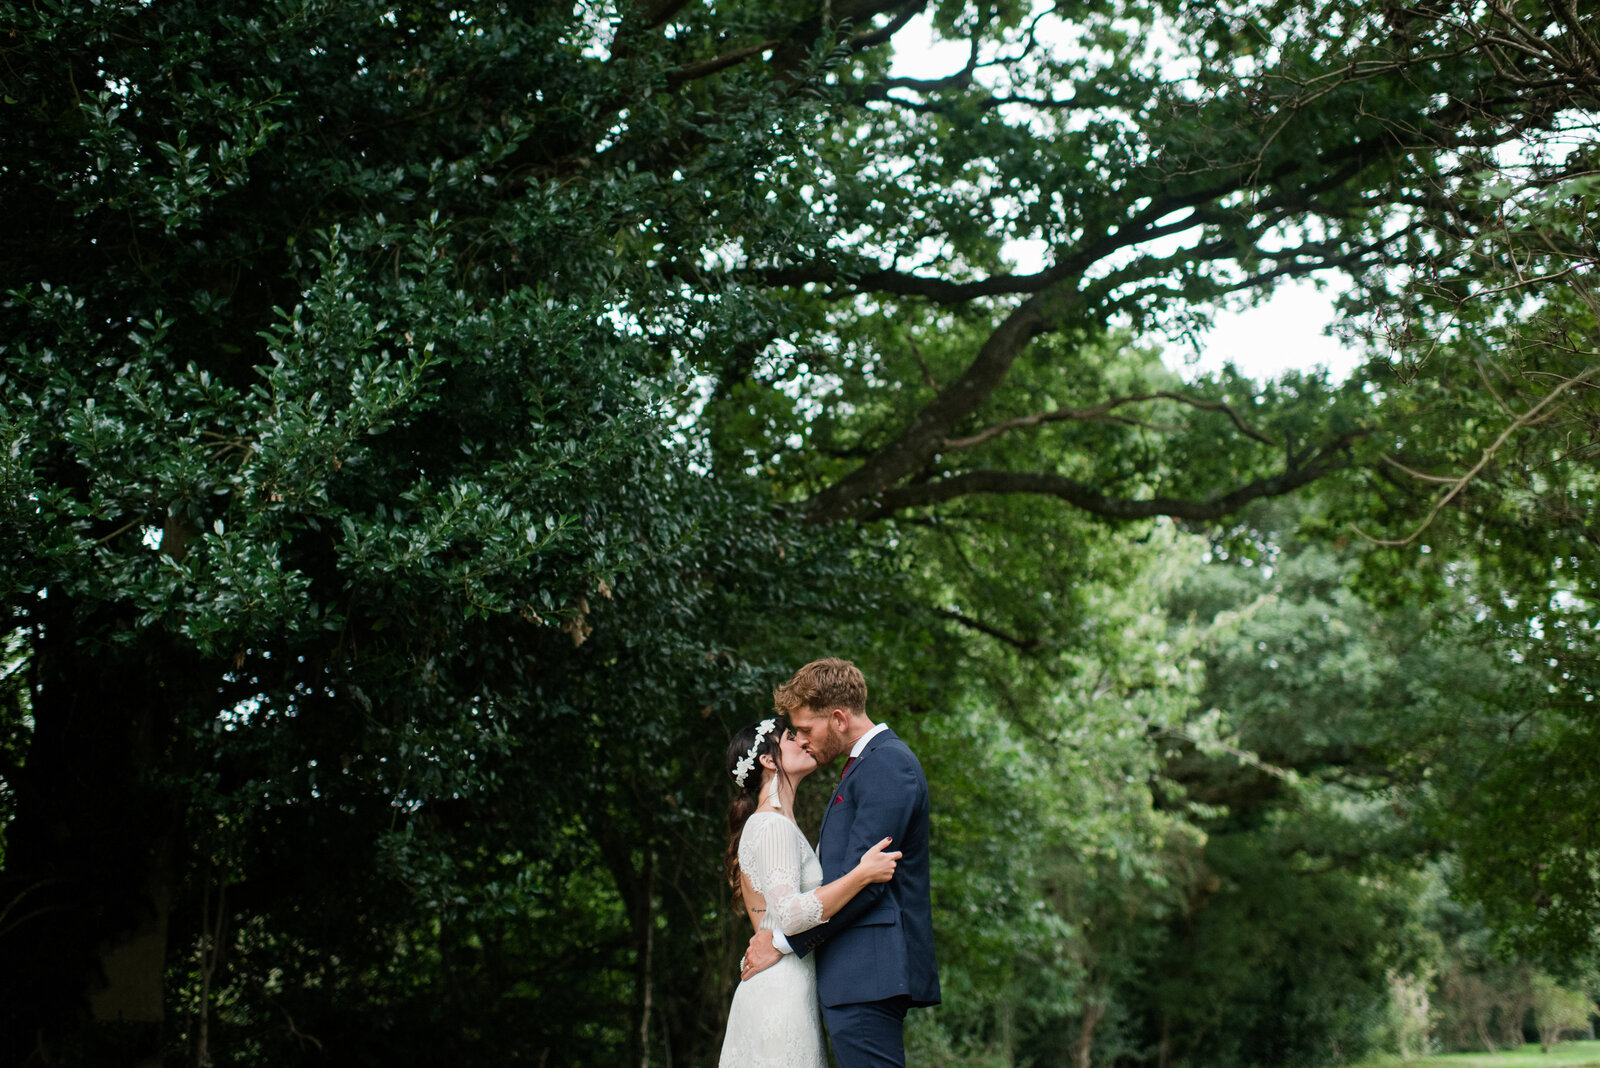 adorlee-1805-AMC-chichester-wedding-photography